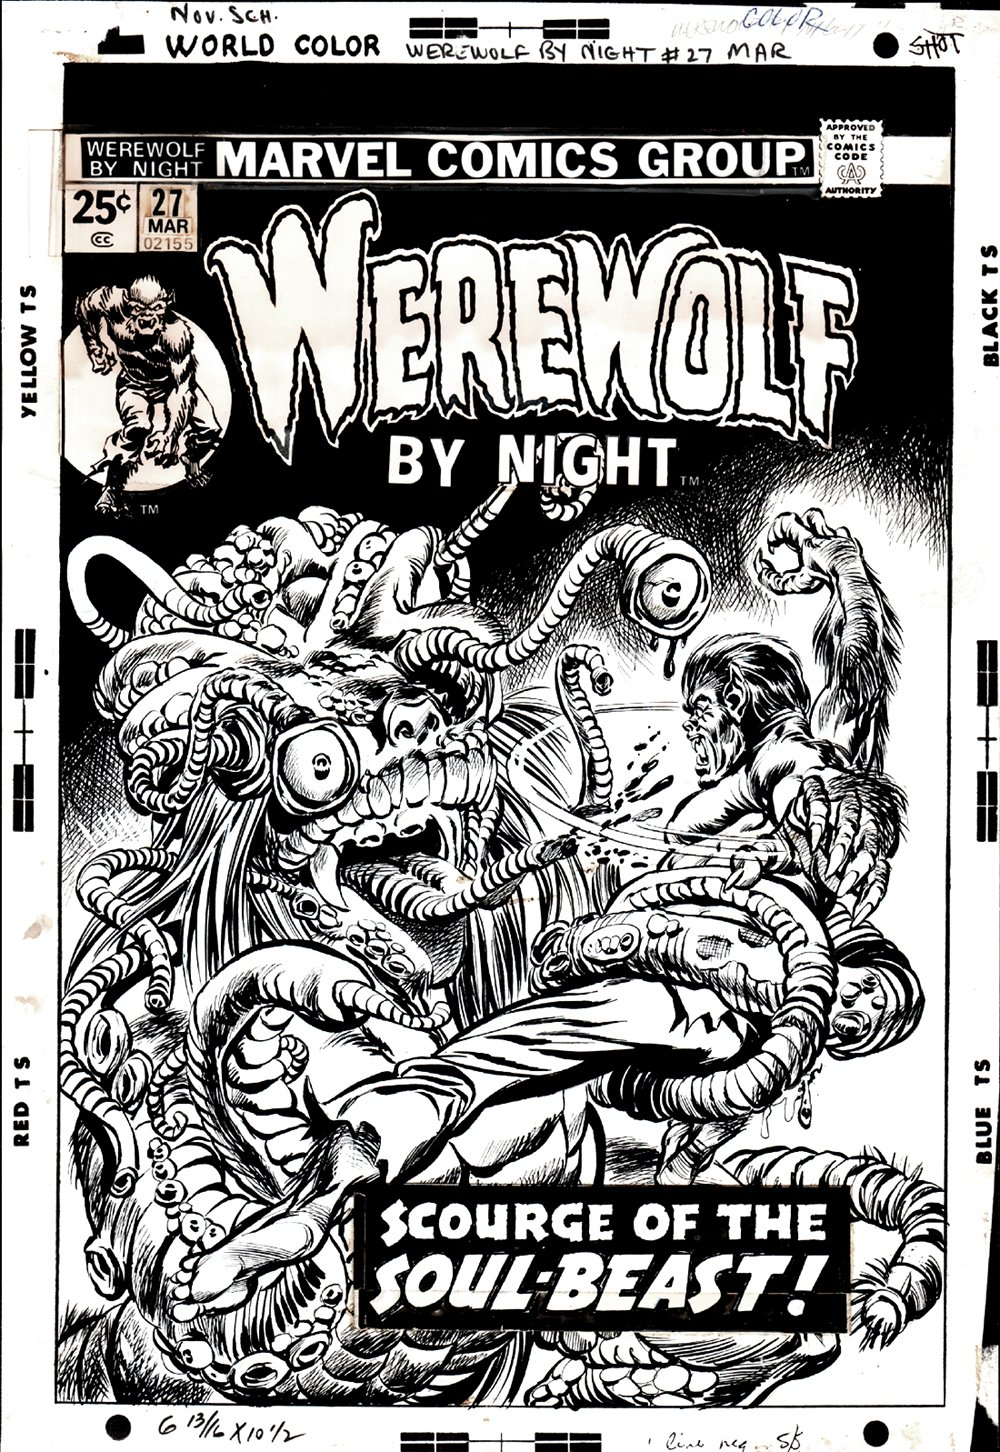 Werewolf by Night #27 Cover (1 OF THE BEST WEREWOLF BATTLE COVERS EVER BY KANE!) 1974